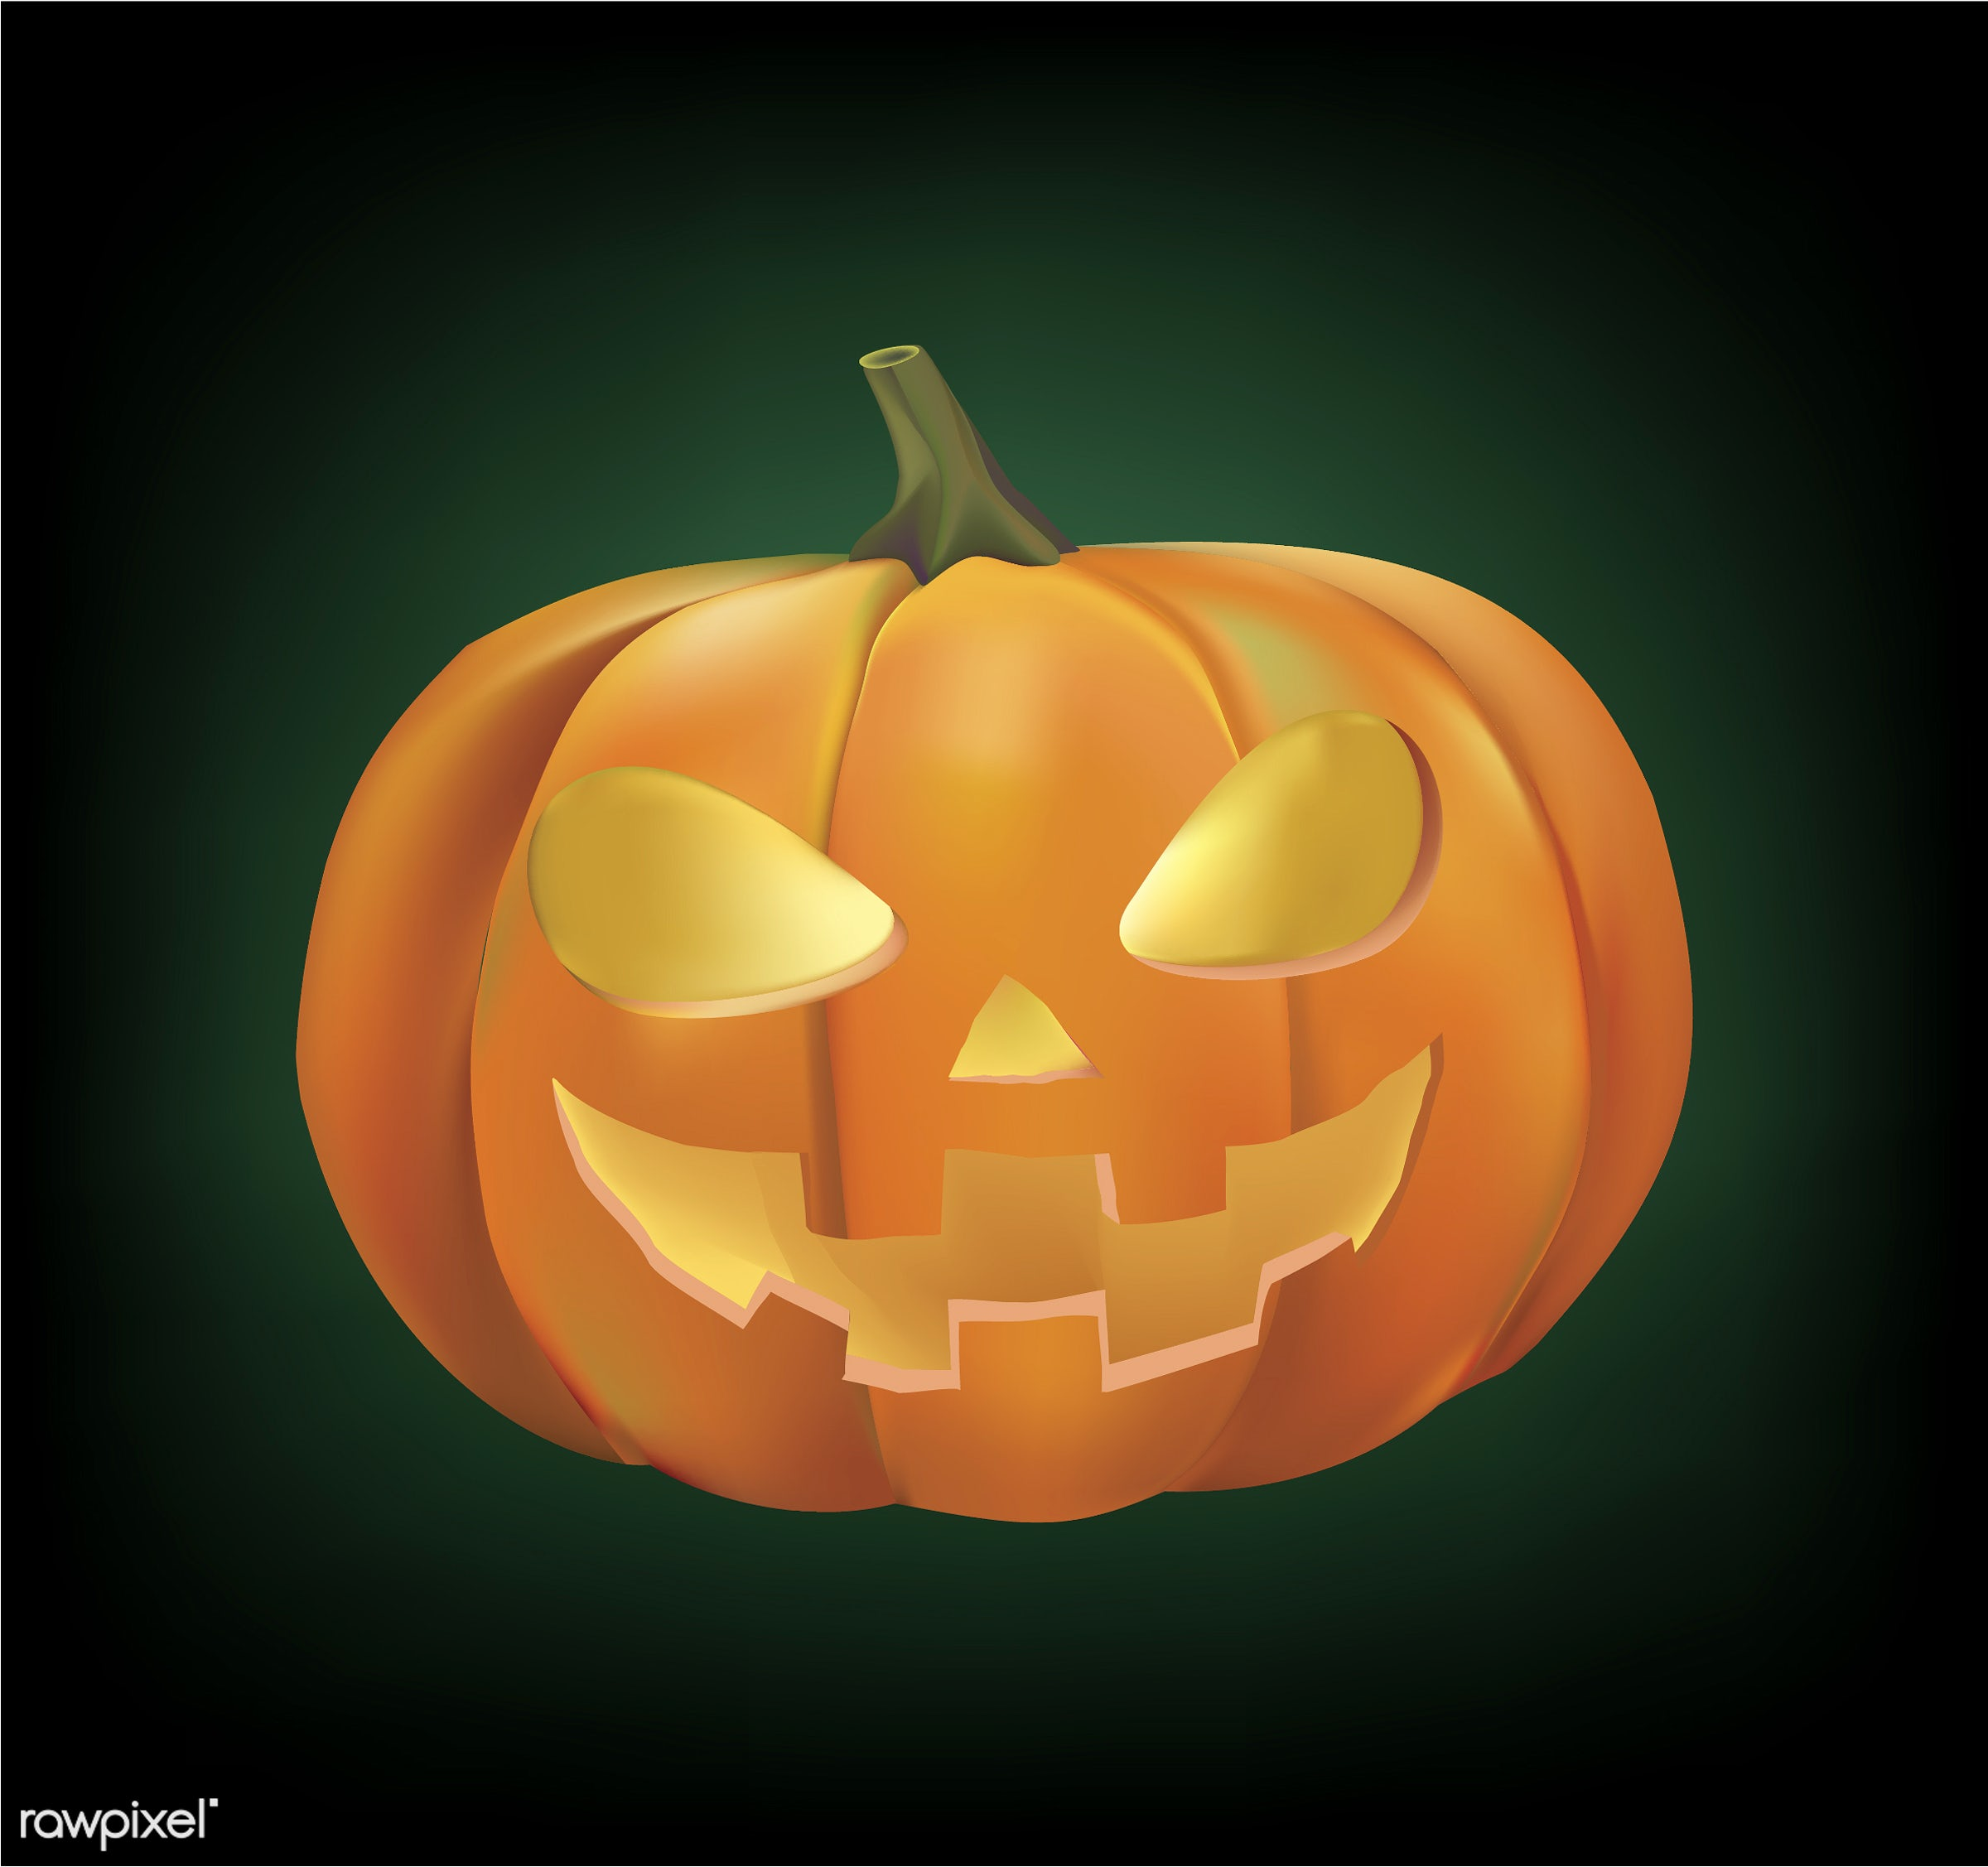 Halloween vector set - autumn, celebration, creepy, design, fall, festival, ghost, graphic, halloween, holiday, icon,...